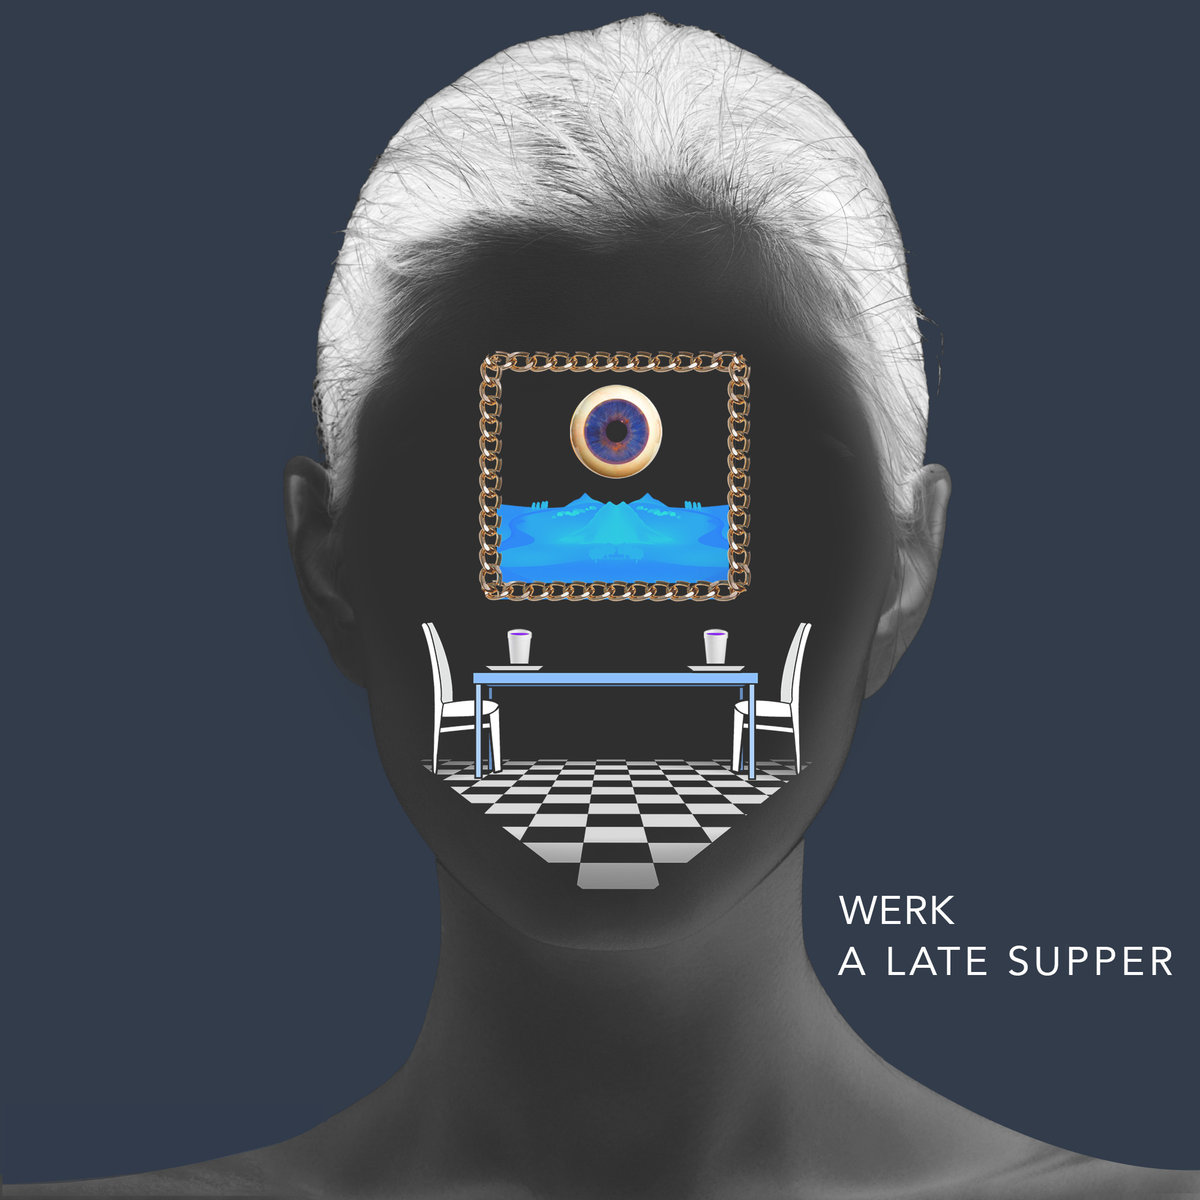 WERK - Slow Slaw @ 'A Late Supper' album (electronic, dubstep)